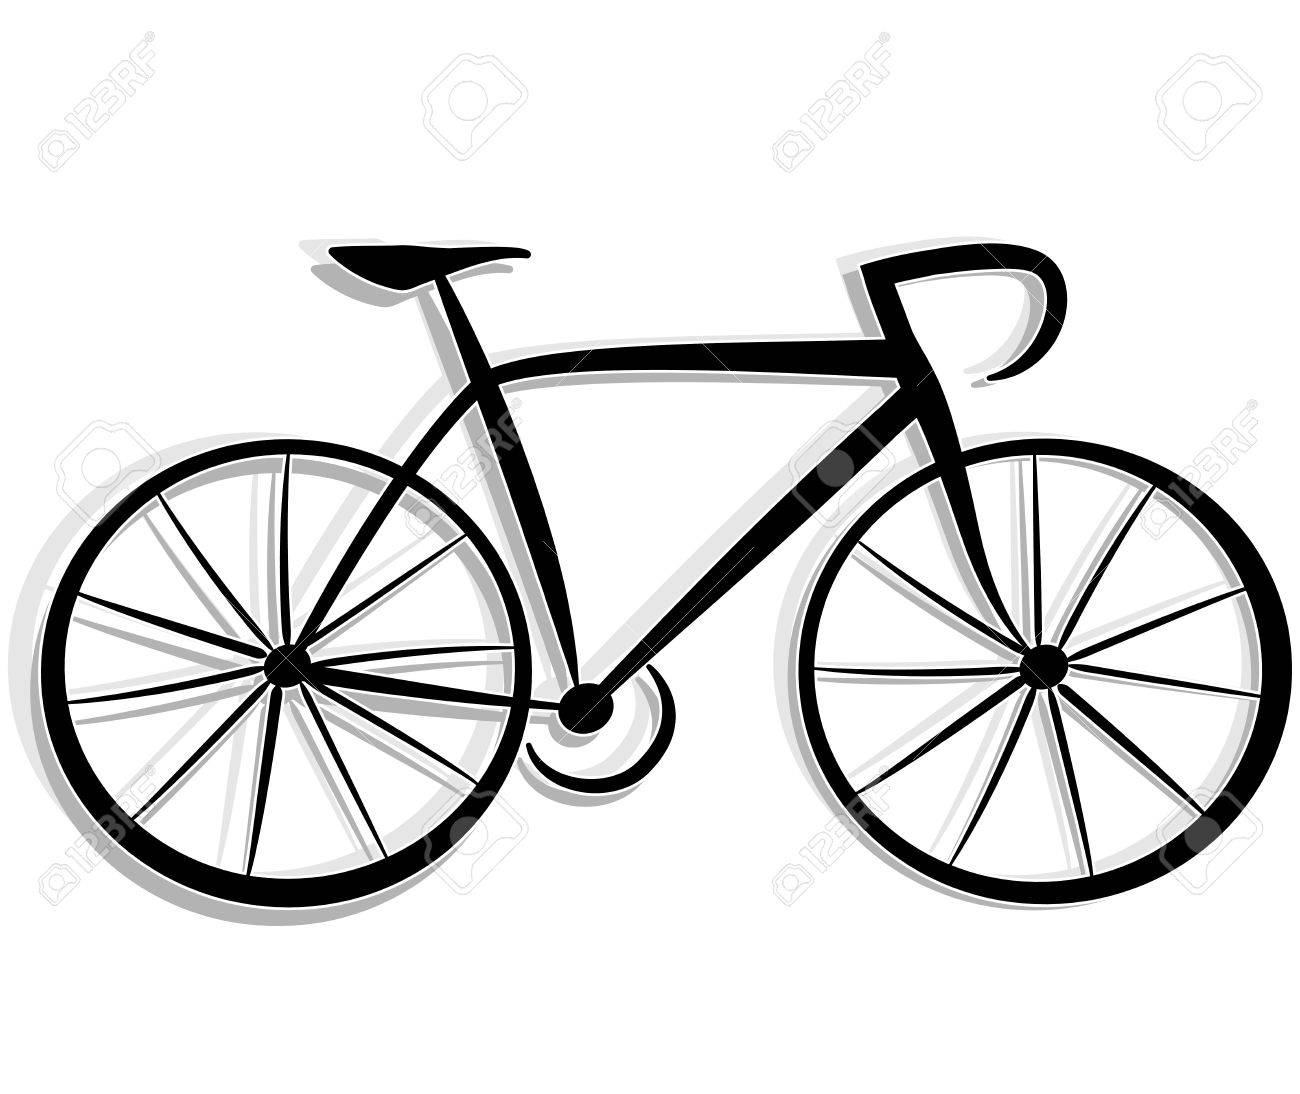 1300x1094 Illustration Of Bicycle Drawing On White Background Royalty Free